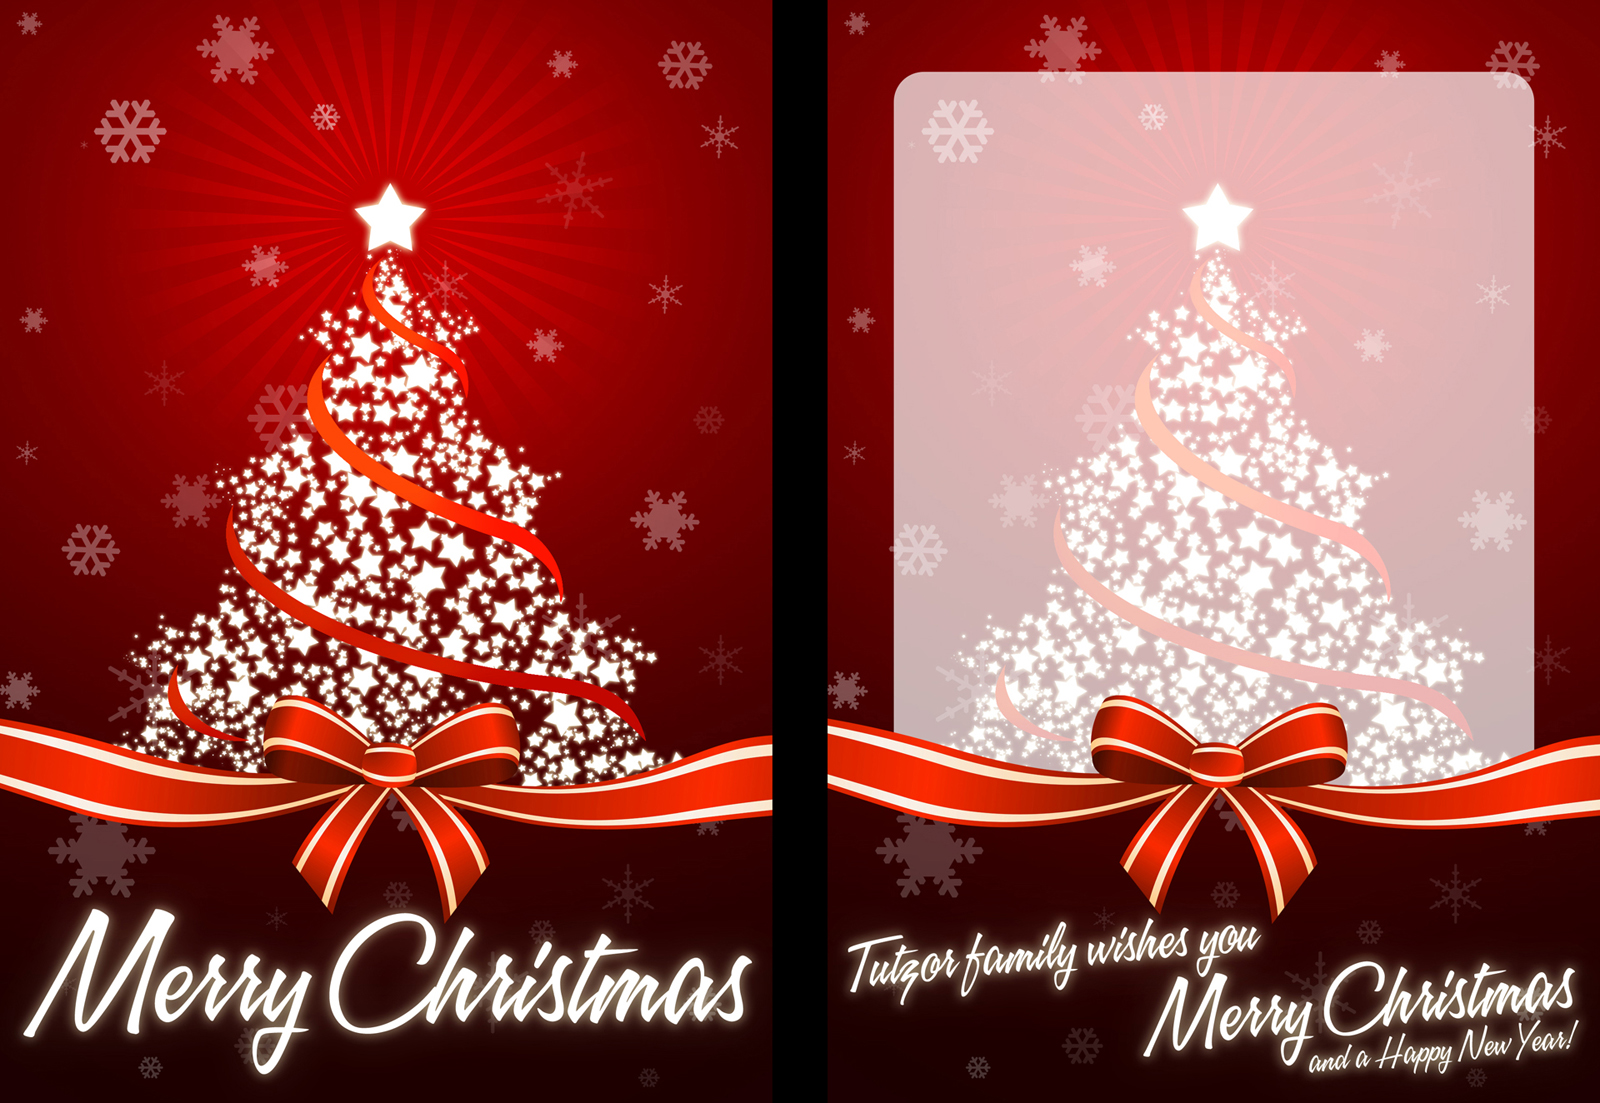 print your own christmas cards